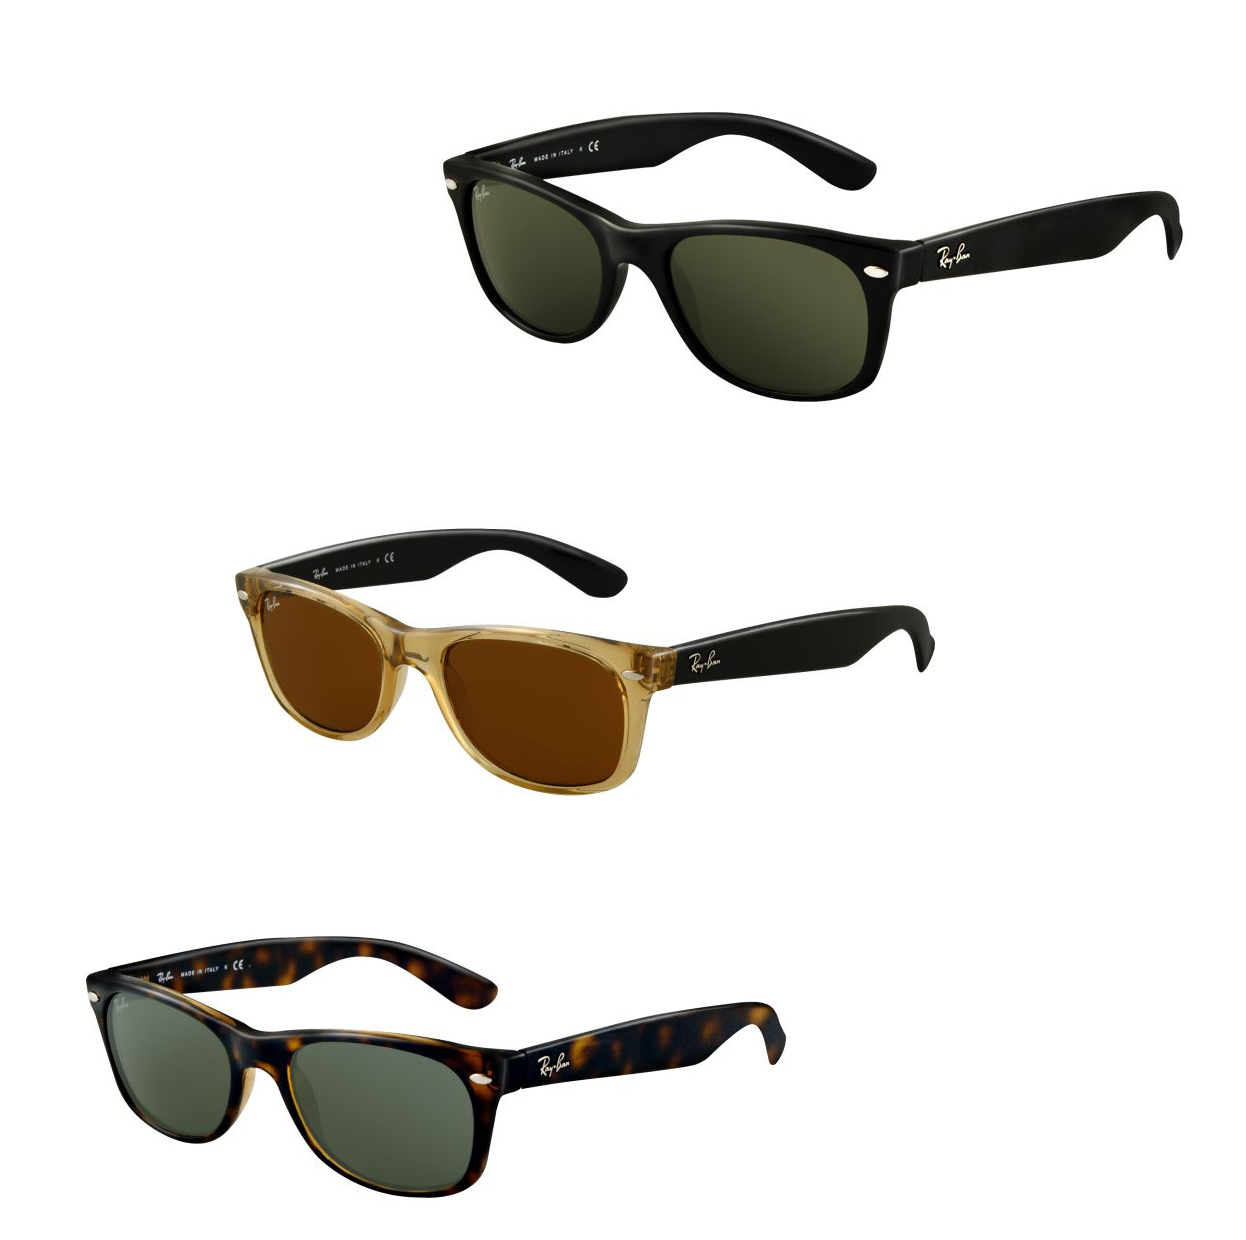 fabce0cd1f Ray-Ban New Wayfarer RB2132 Sunglasses - 65 Models